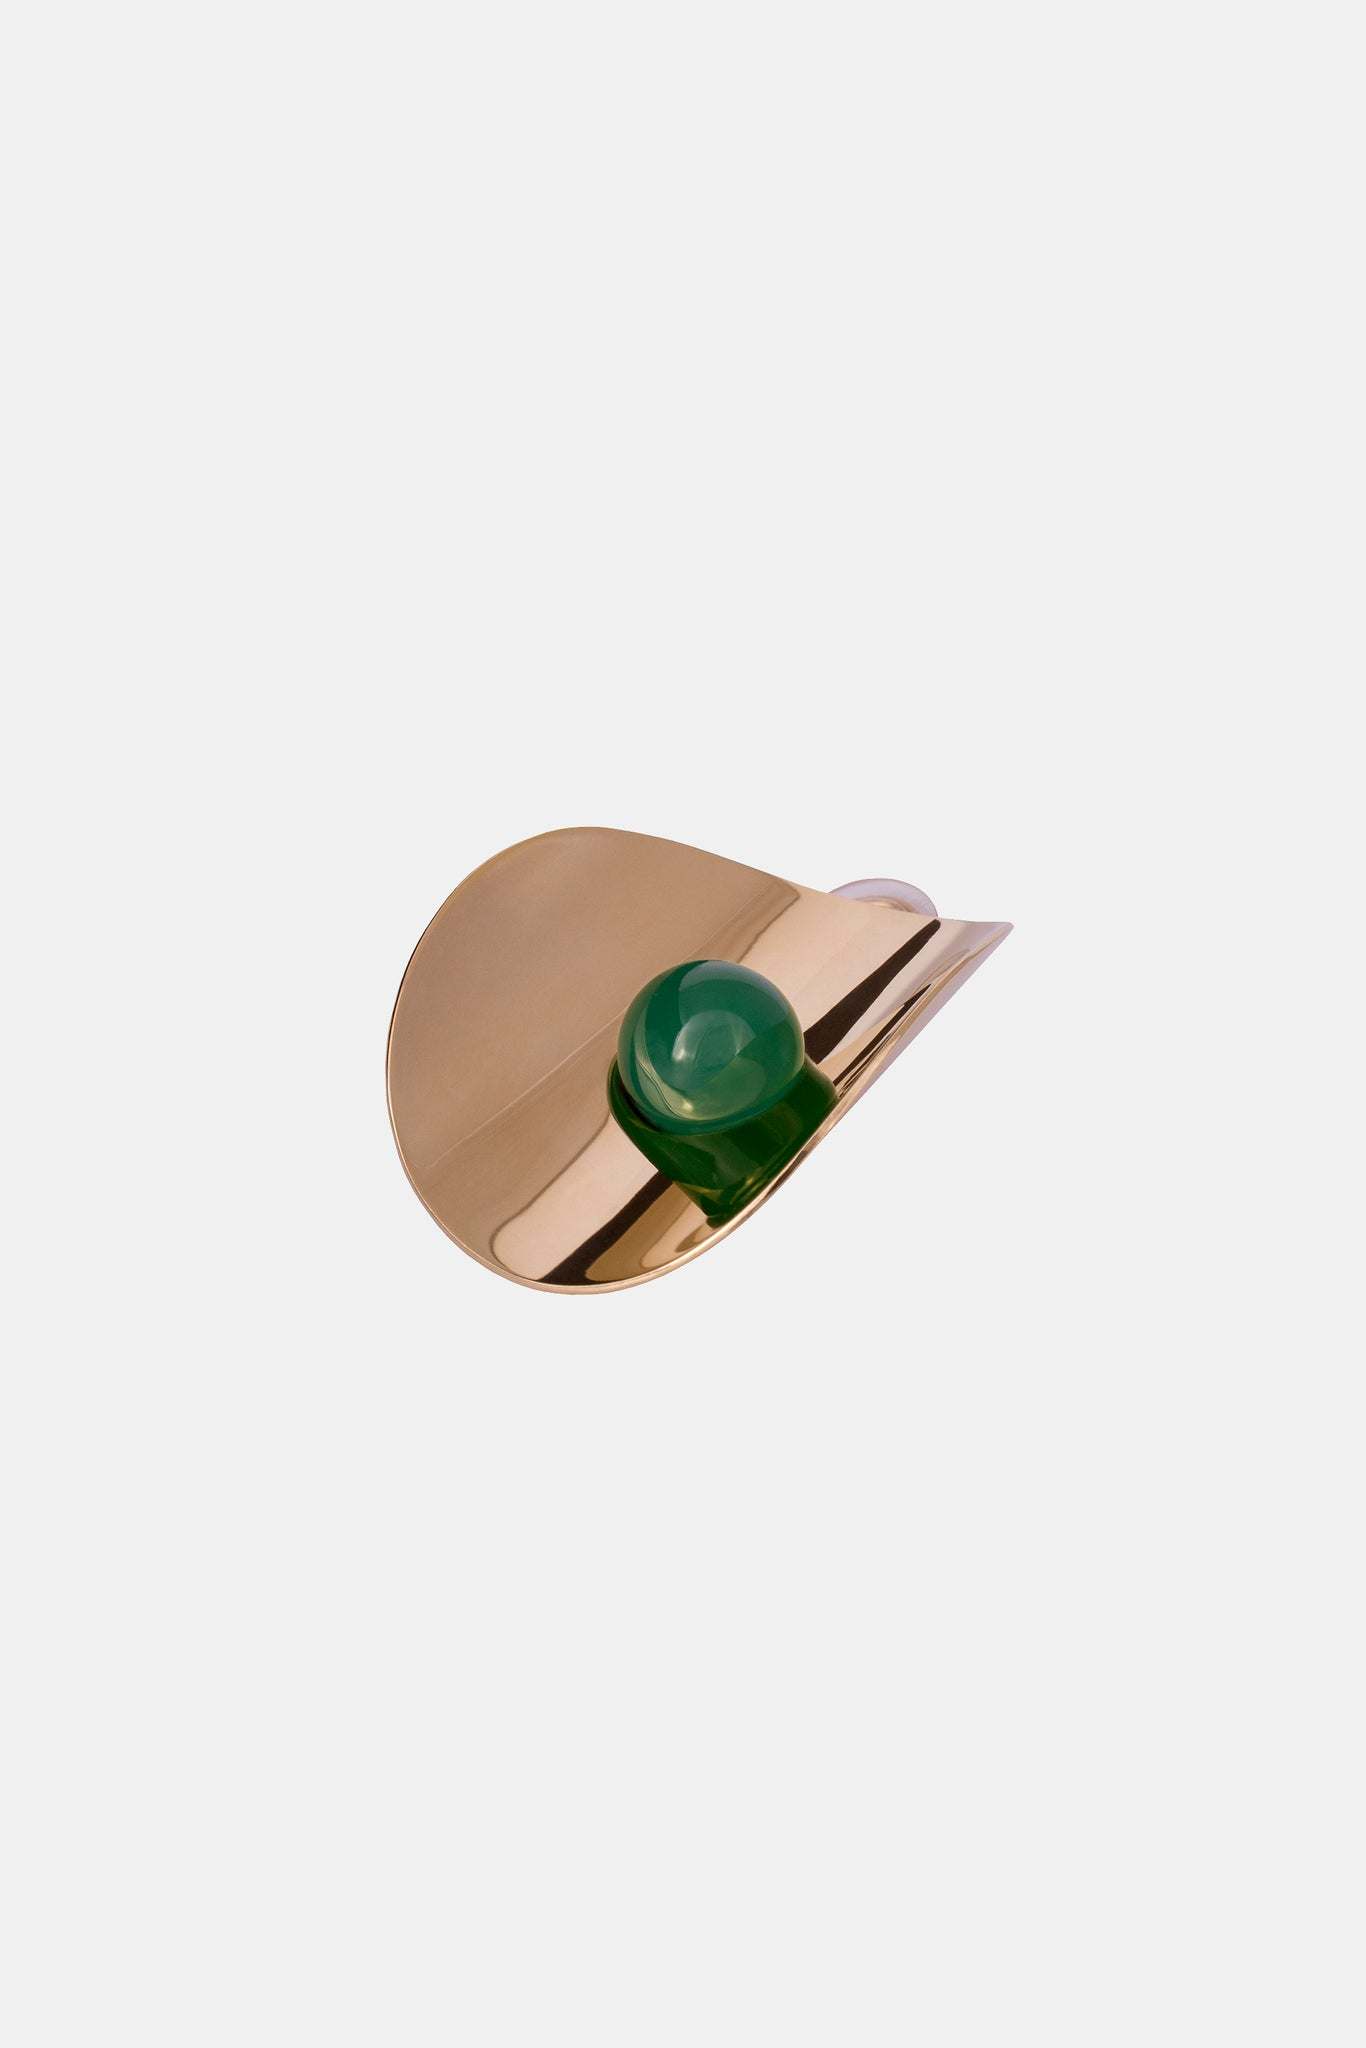 Yellow gold plated statement earring setting a green agate sphere made in Germany